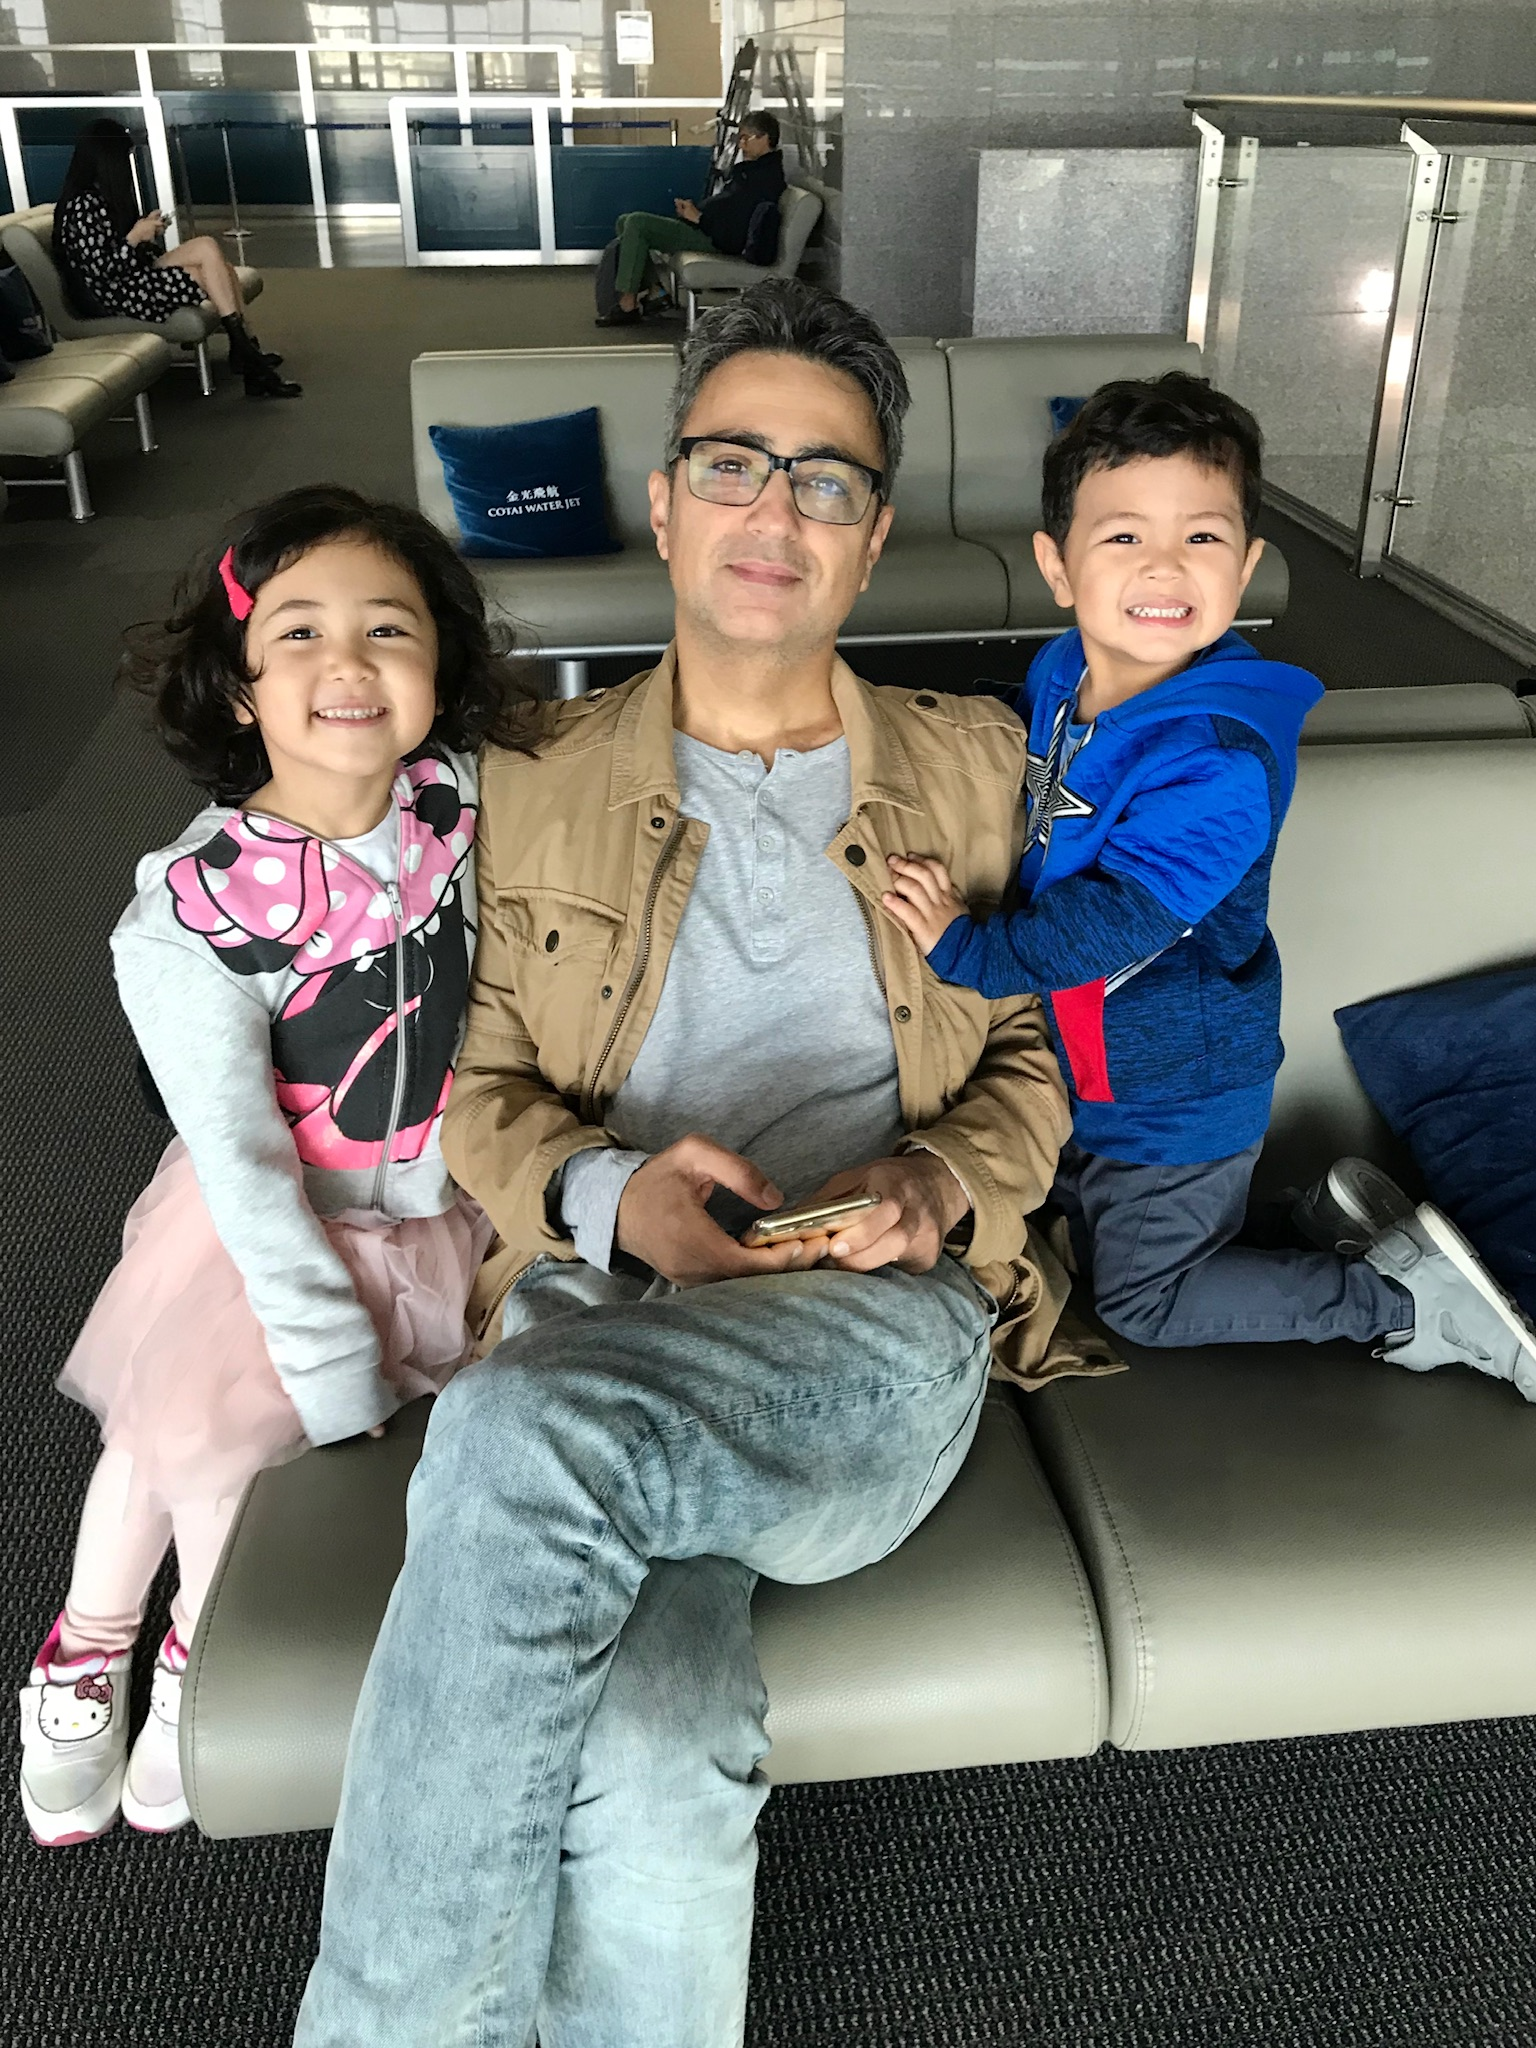 Alidad with Layla and Kayvon Tash Jan 2019